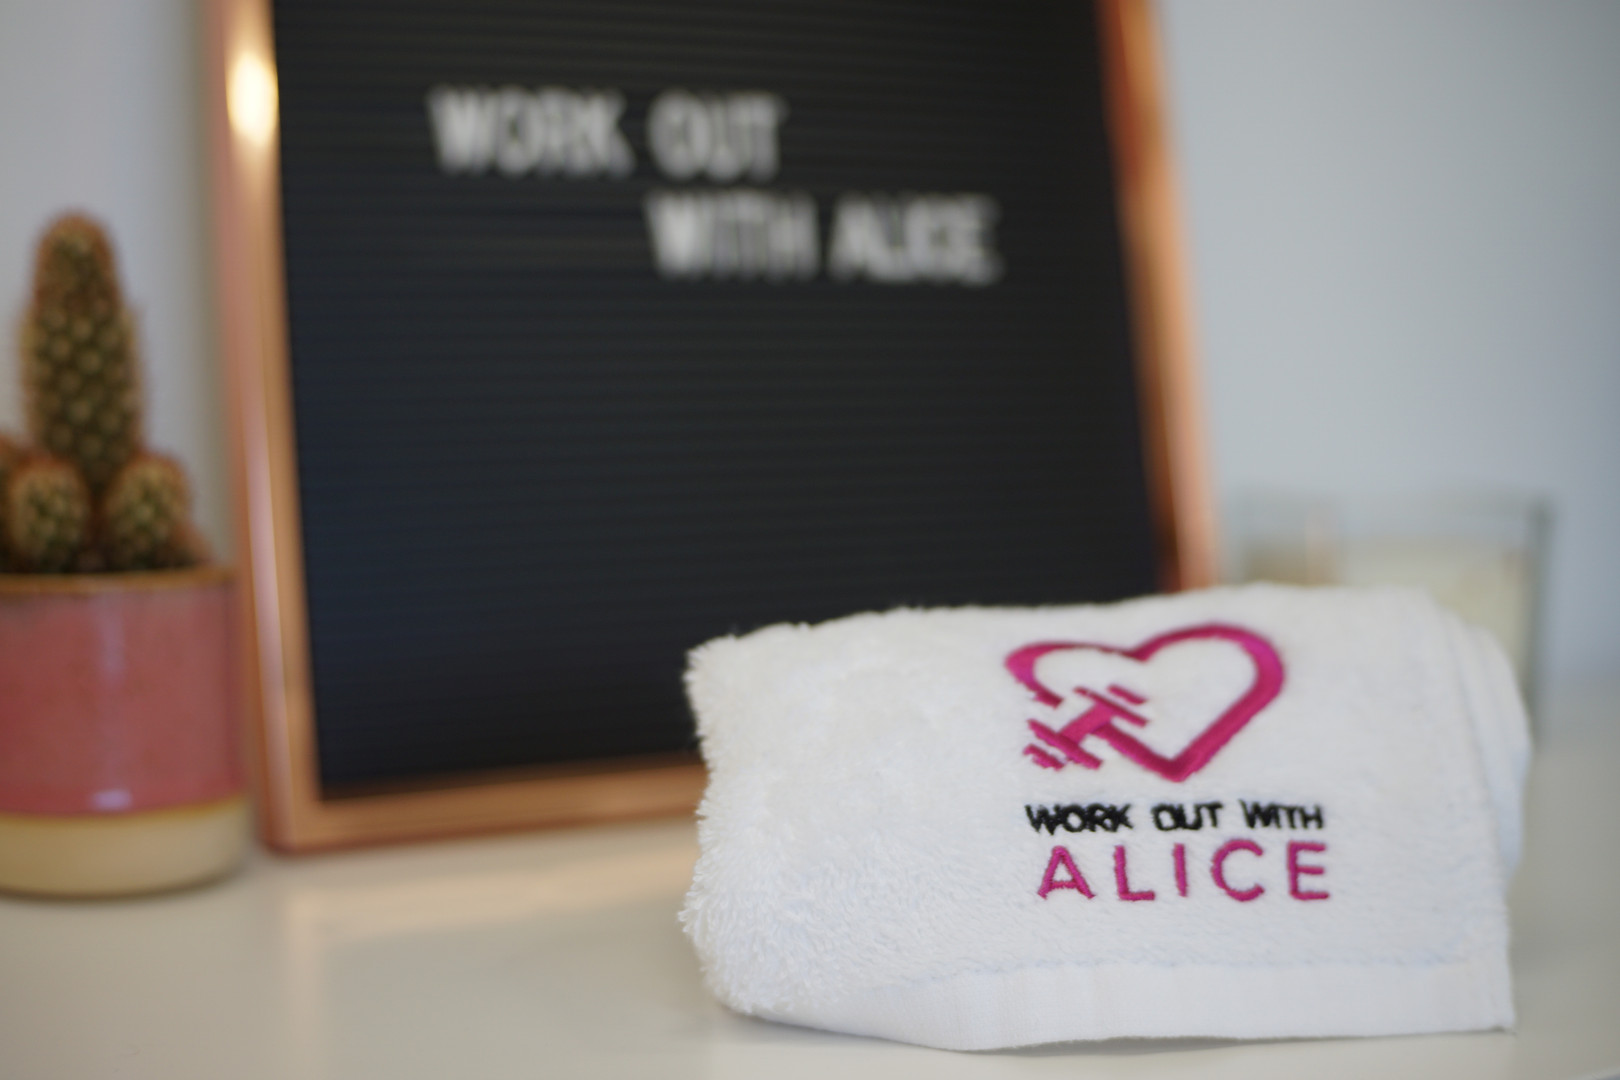 Work Out with Alice